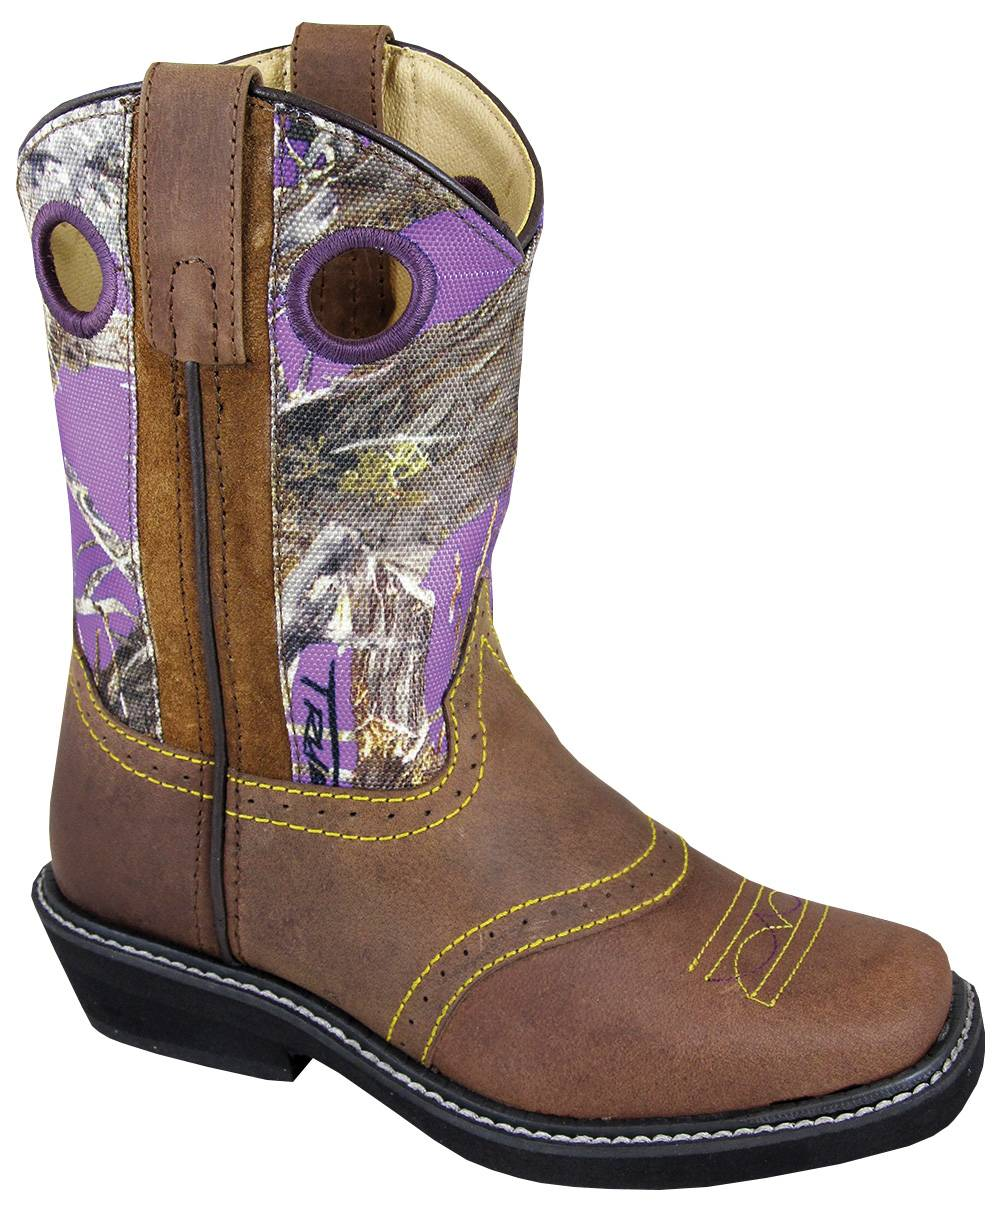 Smoky Mountain Cypress Square Toe Crepe Boot - Kids, Brown/Purple